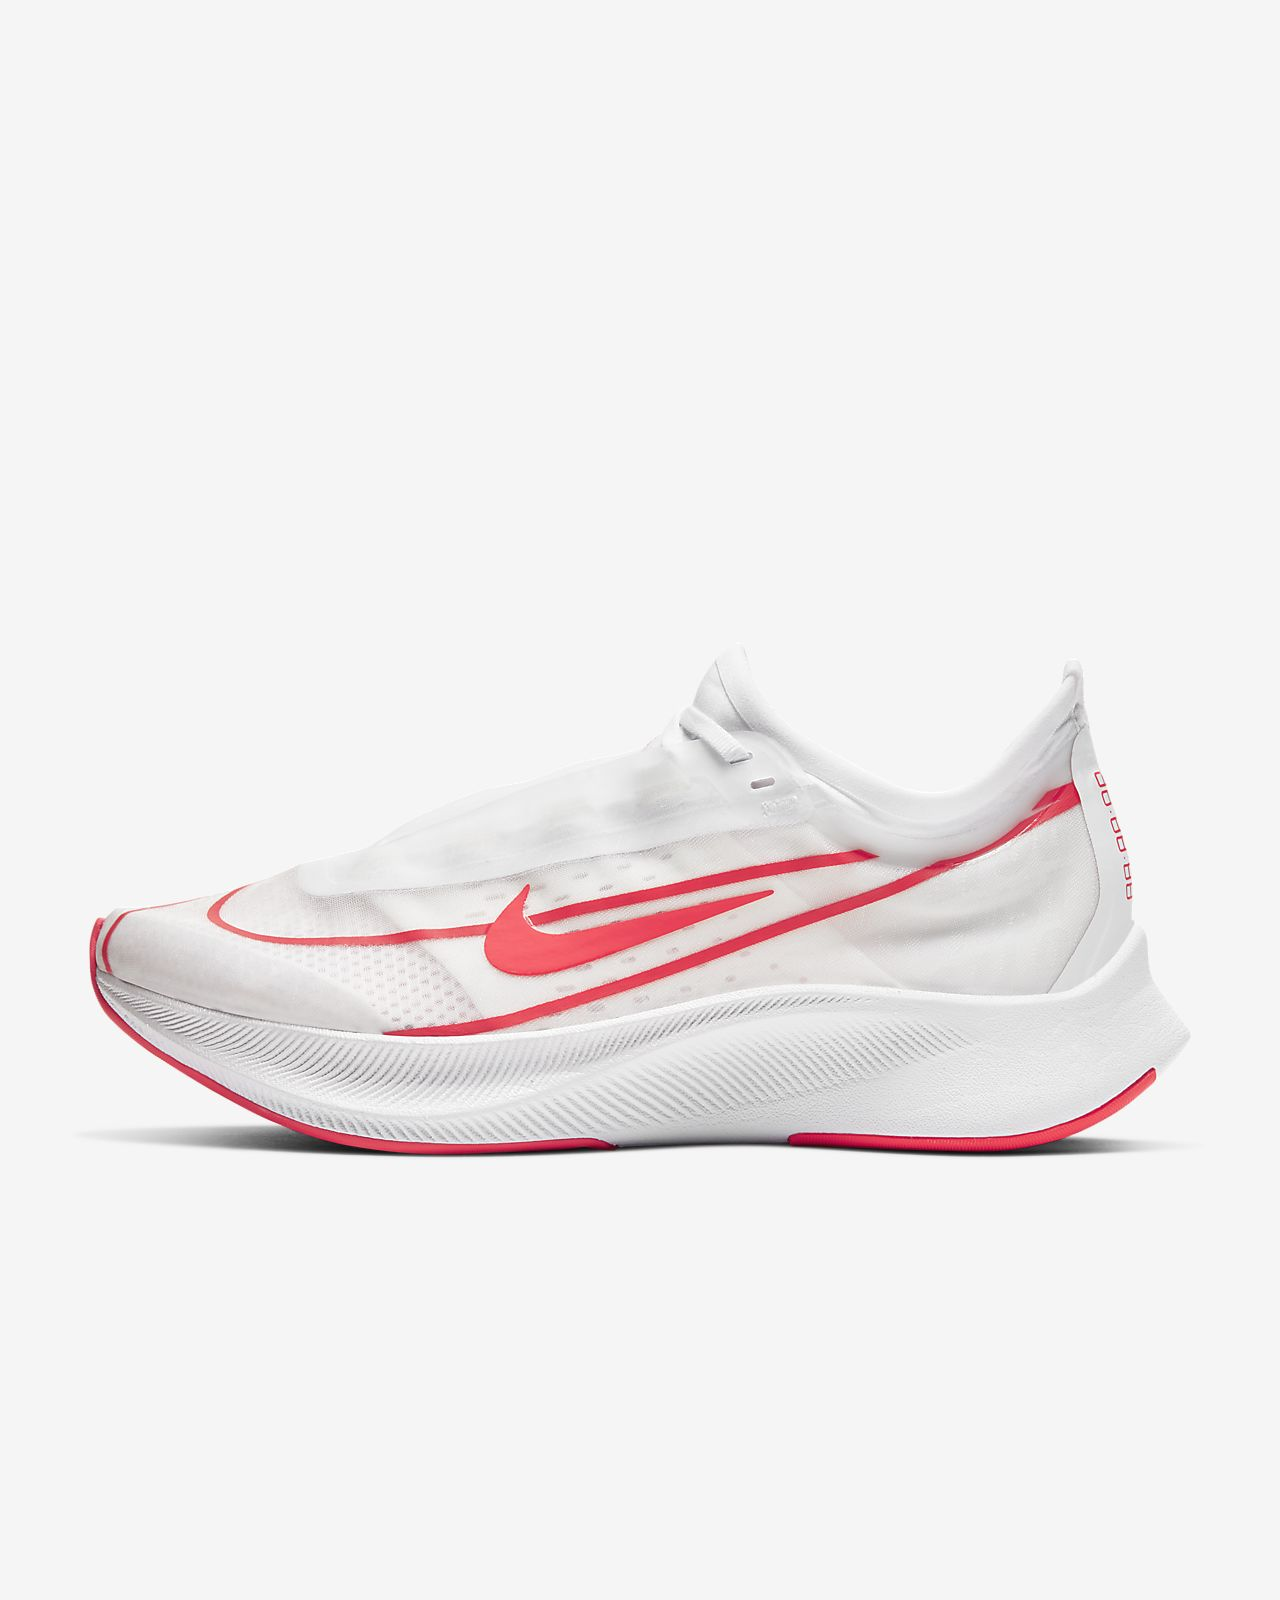 Off White x Nike Zoom Fly Runing SHoes Transparent White